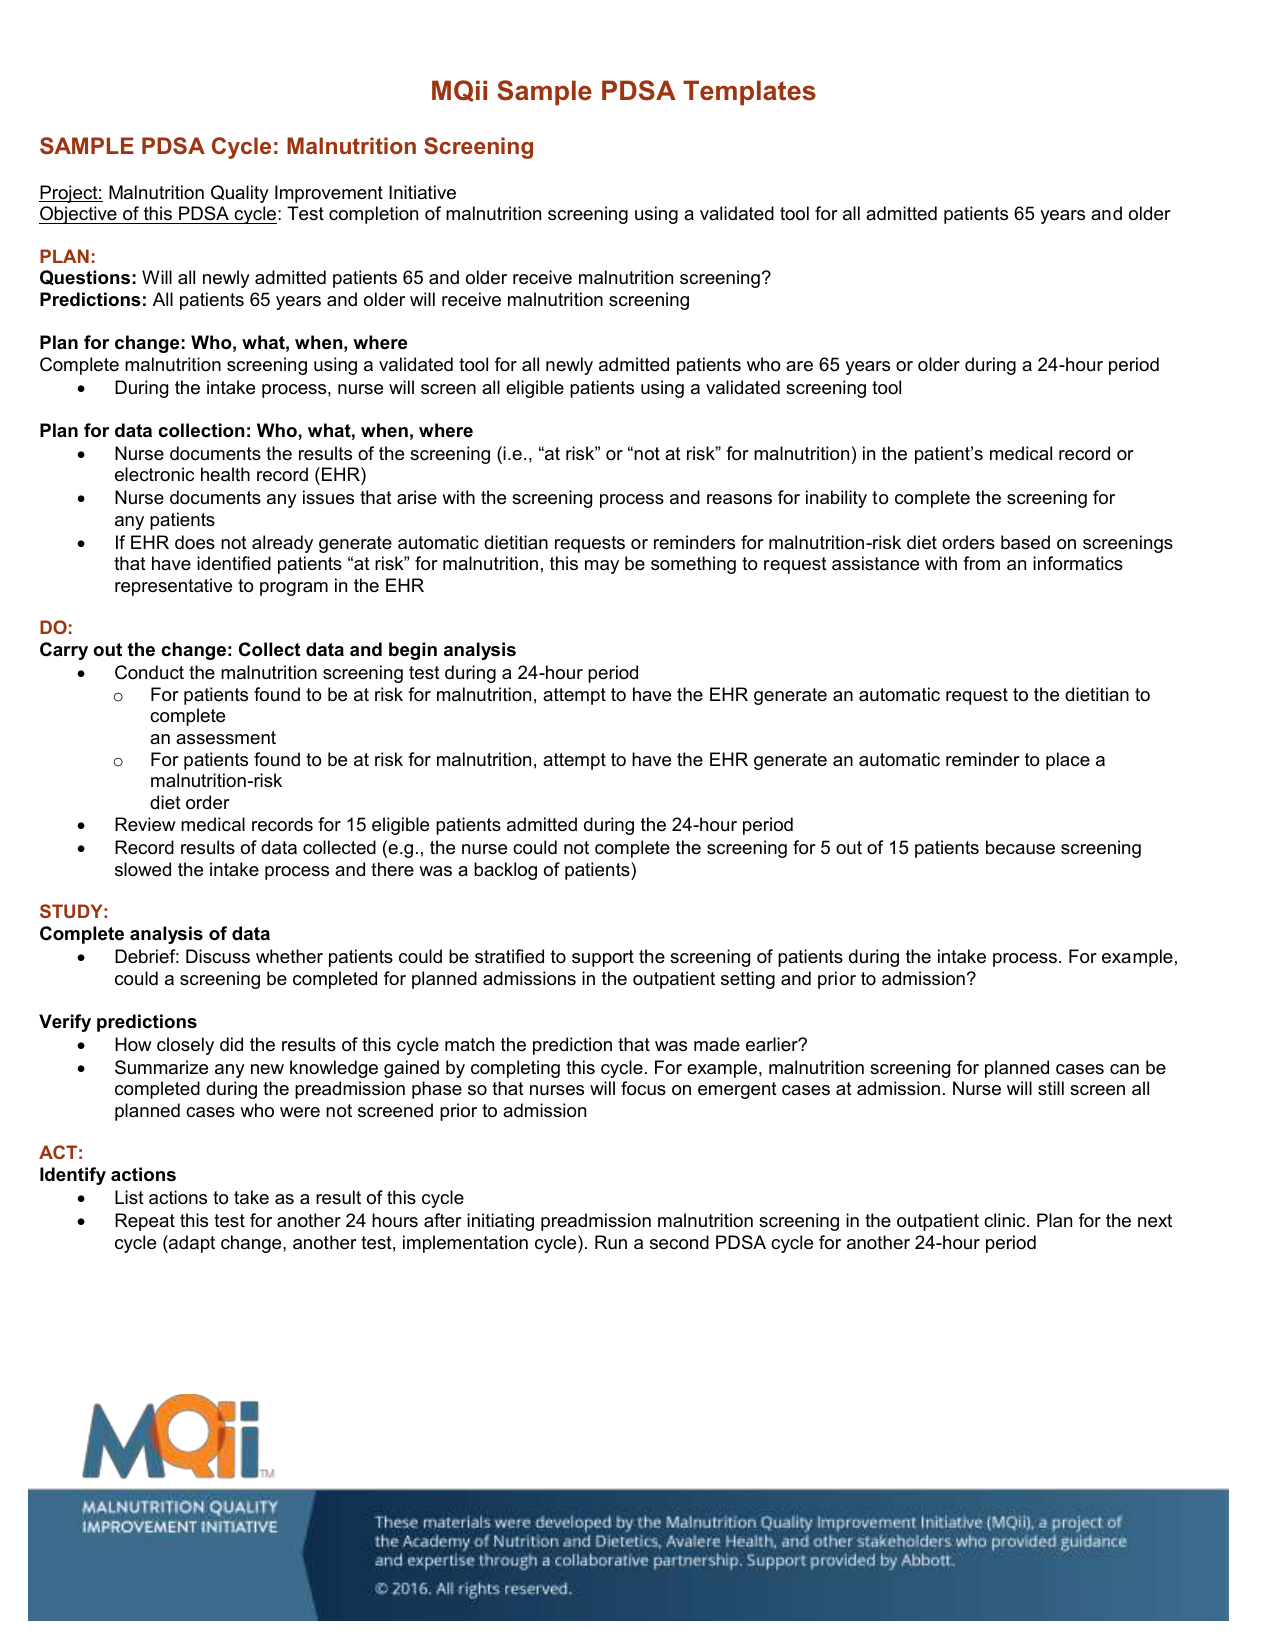 MQii Sample Plan-Do-Study-Act